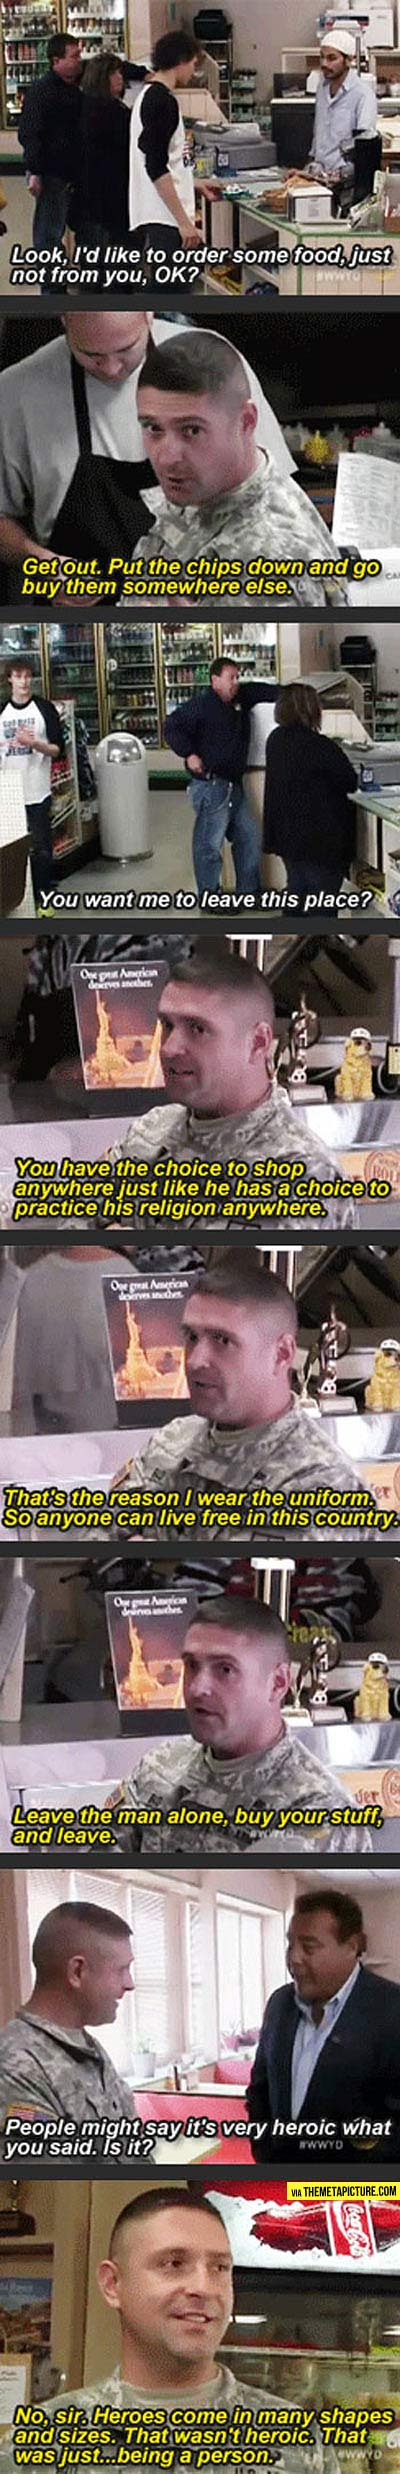 cool-soldier-shopping-rights